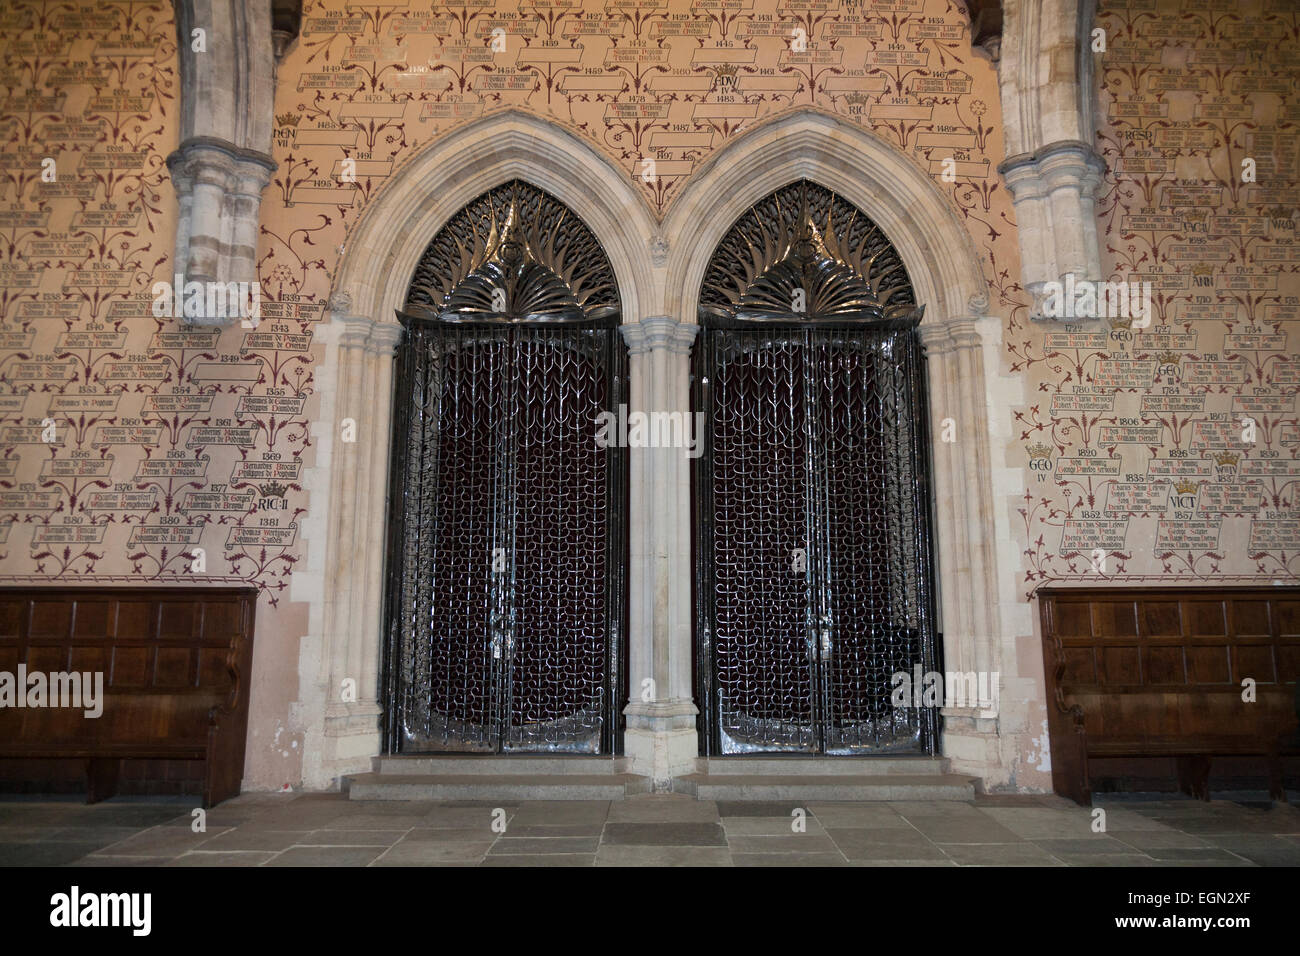 Wrought steel gate / gates to arched doors / doorways. Great Hall, Winchester Castle. Winchester, Hampshire. UK - Stock Image